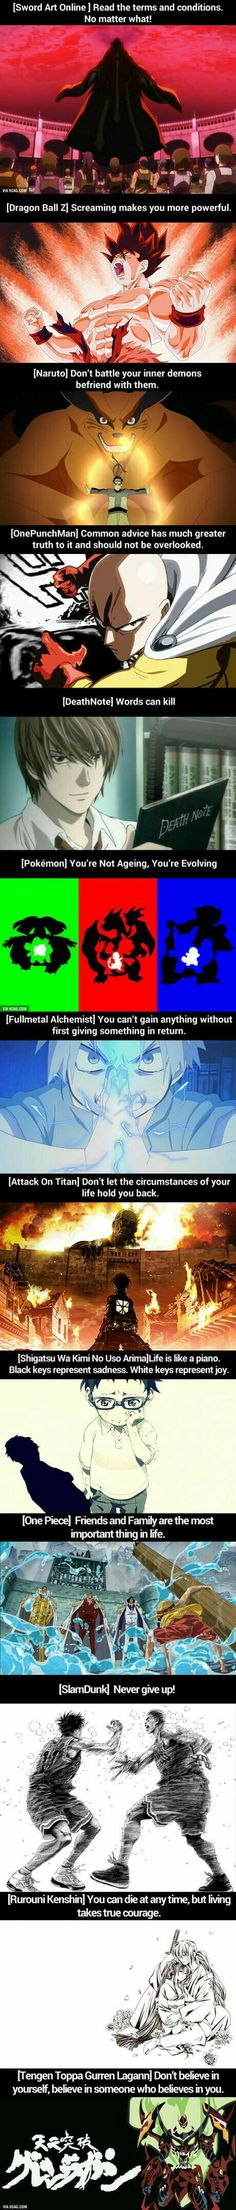 What Anime has Taught Me, text, funny, Anime characters, crossover, Sword Art Online, Dragonball Z, Naruto, One Punch Man, Death Note, Pokémon, Fullmetal Alchemist, Attack on Titan, Shigatsu wa Kimi no Uso, Your Lie in April, One Piece, Slam Dunk, Rurouni Kenshin, Tengen Toppa Gurren Lagann; Anime